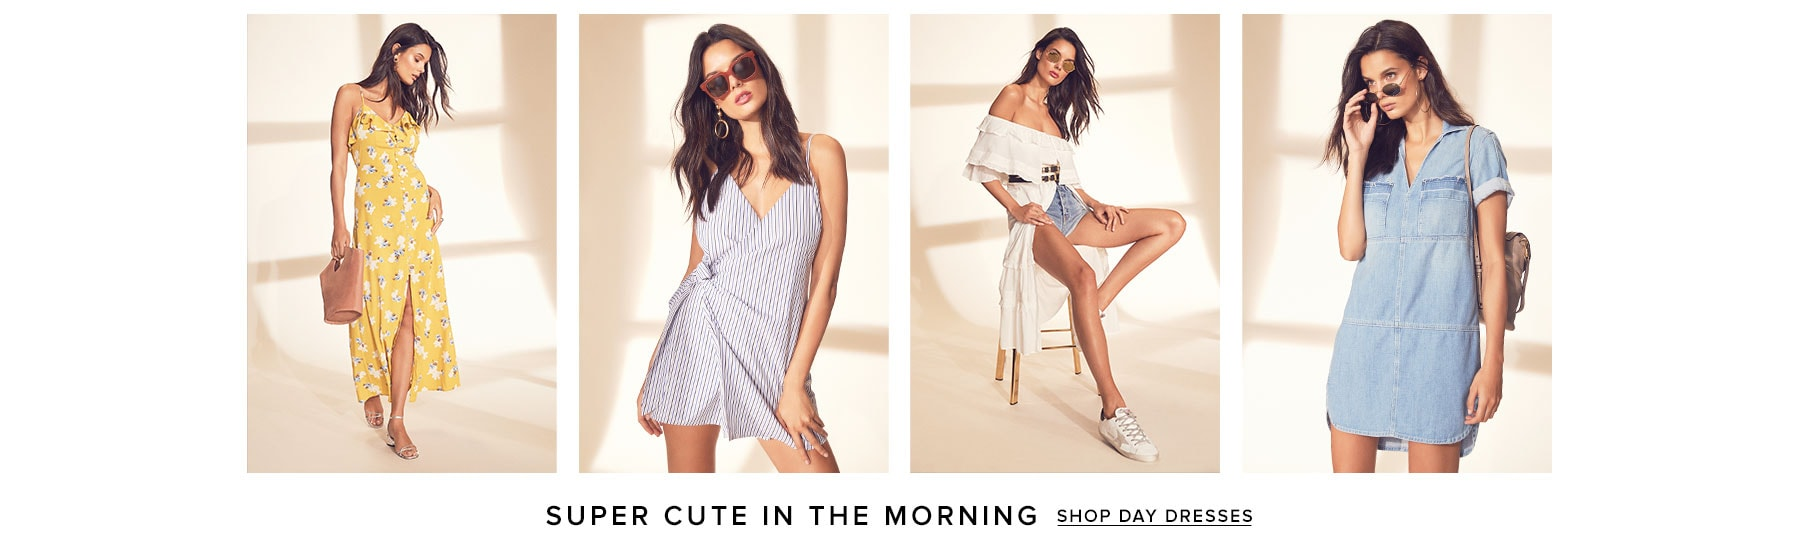 Super Cute in the Morning. Shop day dresses.